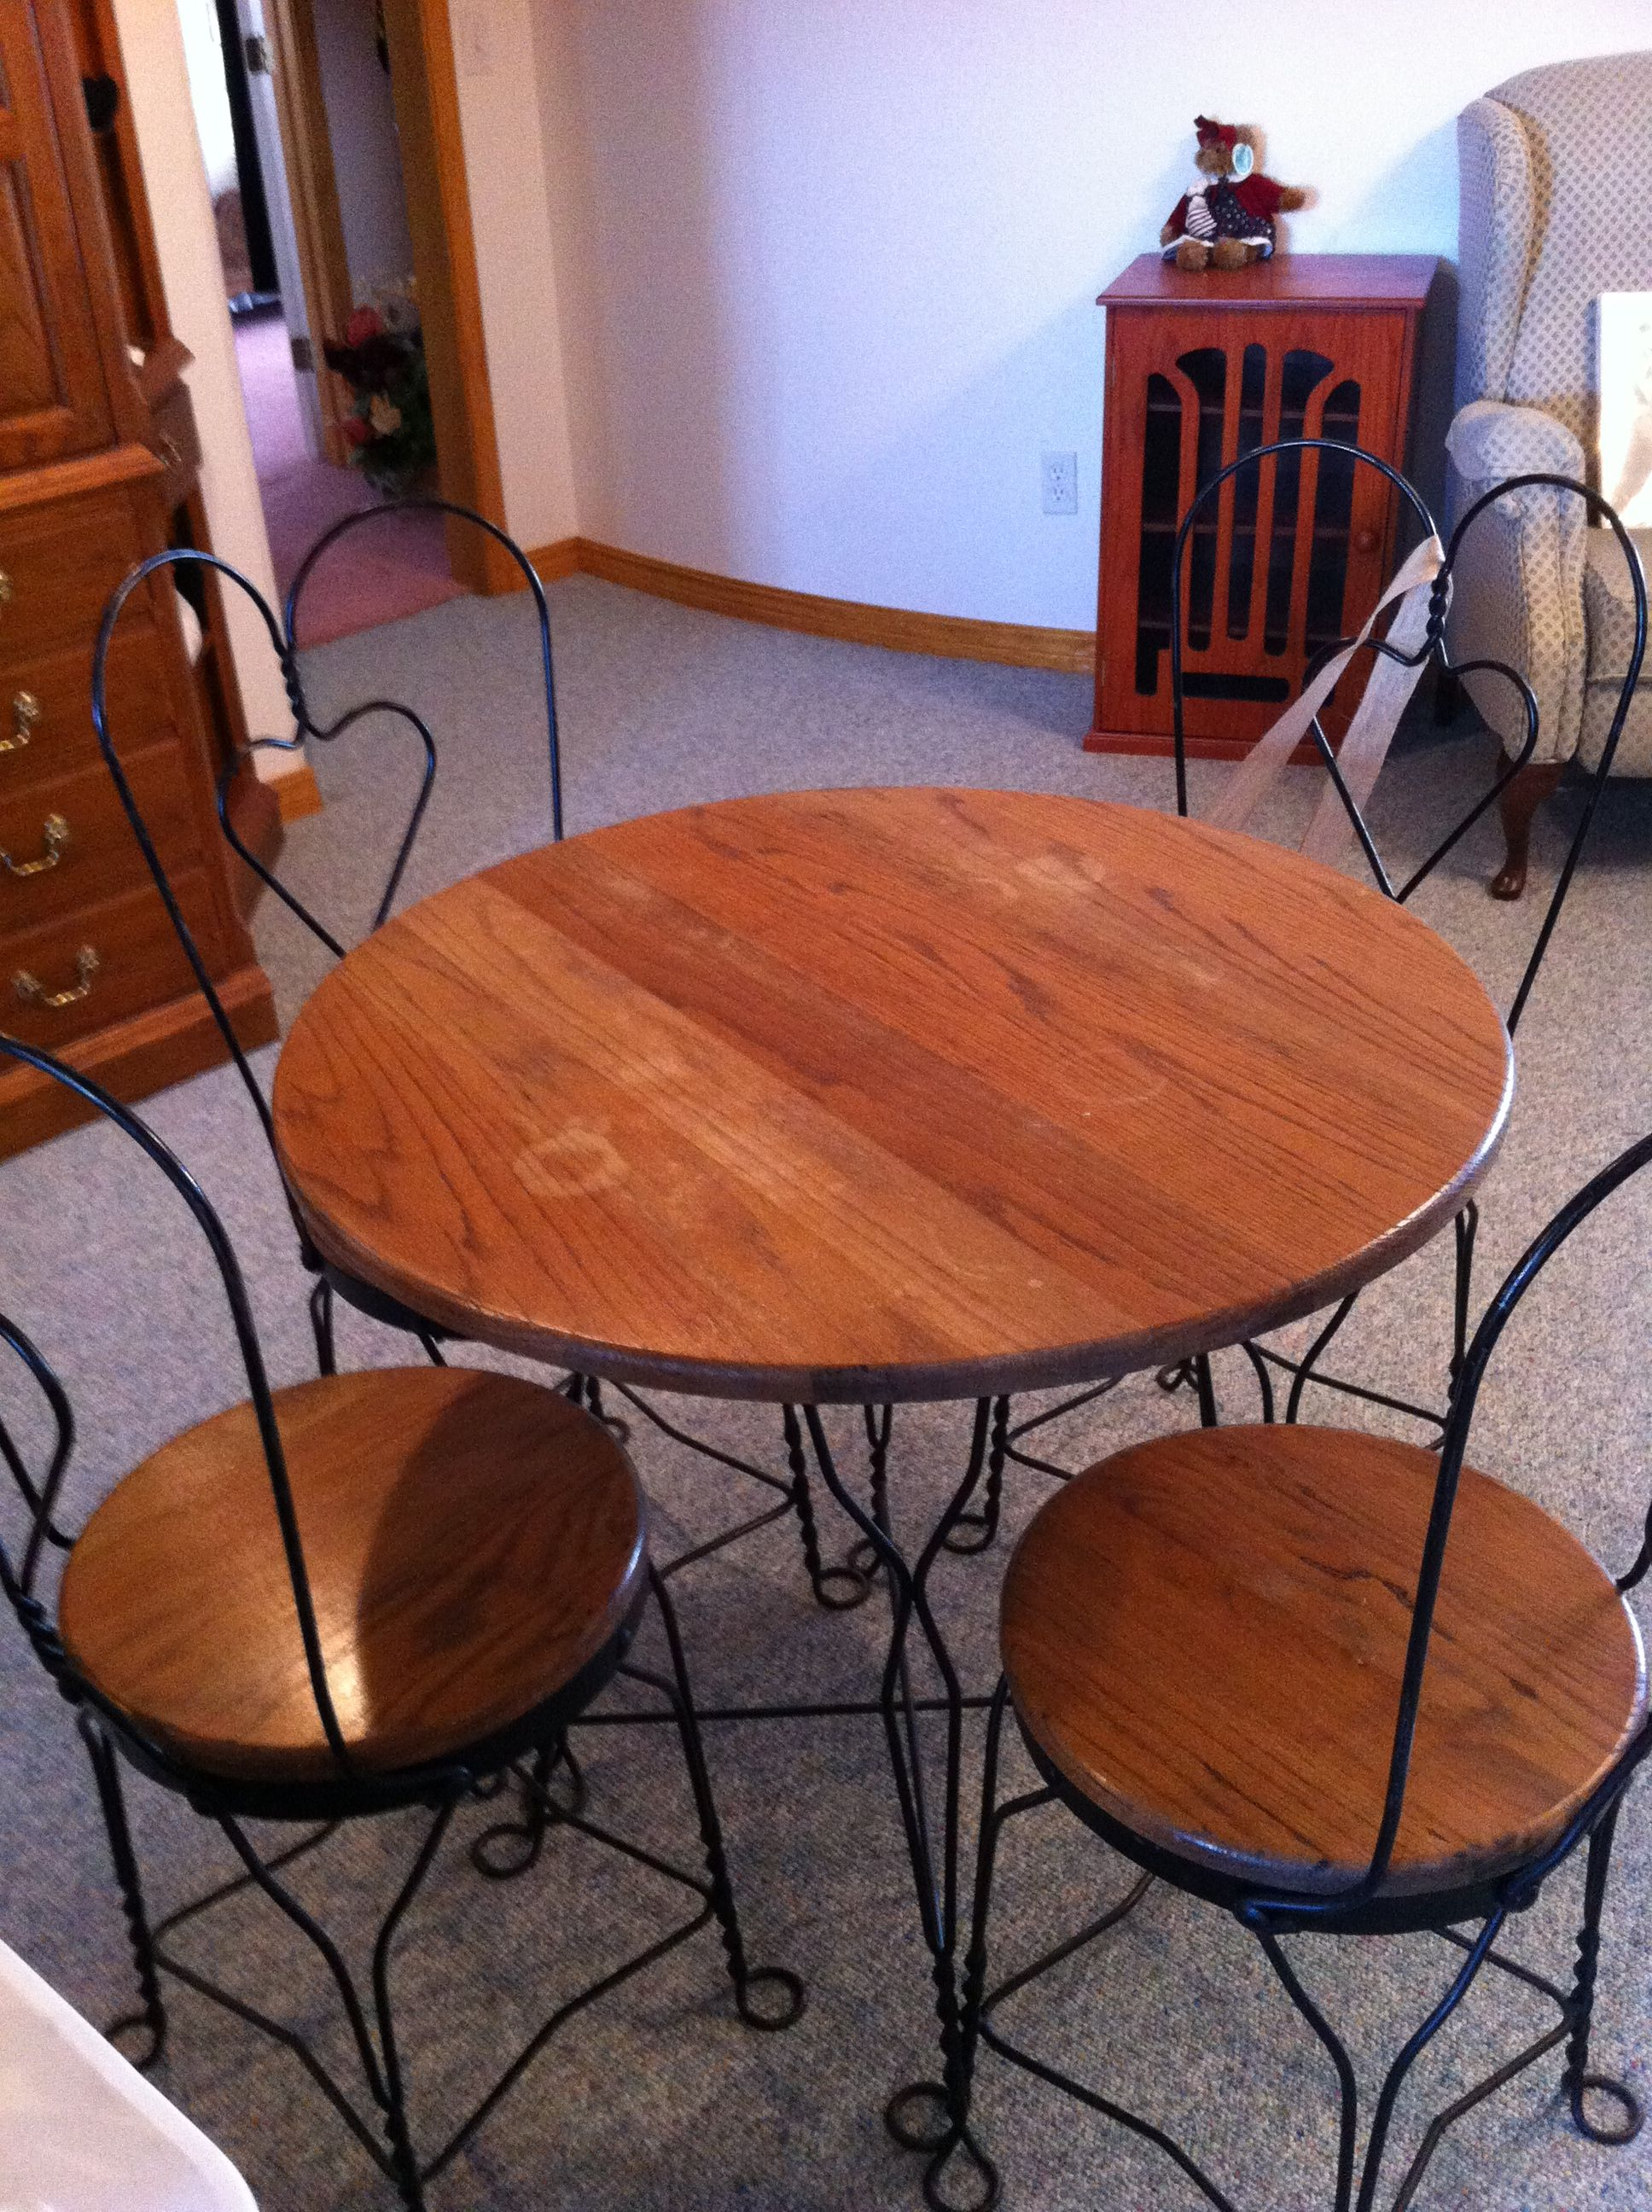 Antique Ice Cream Parlor Table And Chair For At The Barker Estate On July 26 28 Like Us Www Facebook Frantzhelpinghands